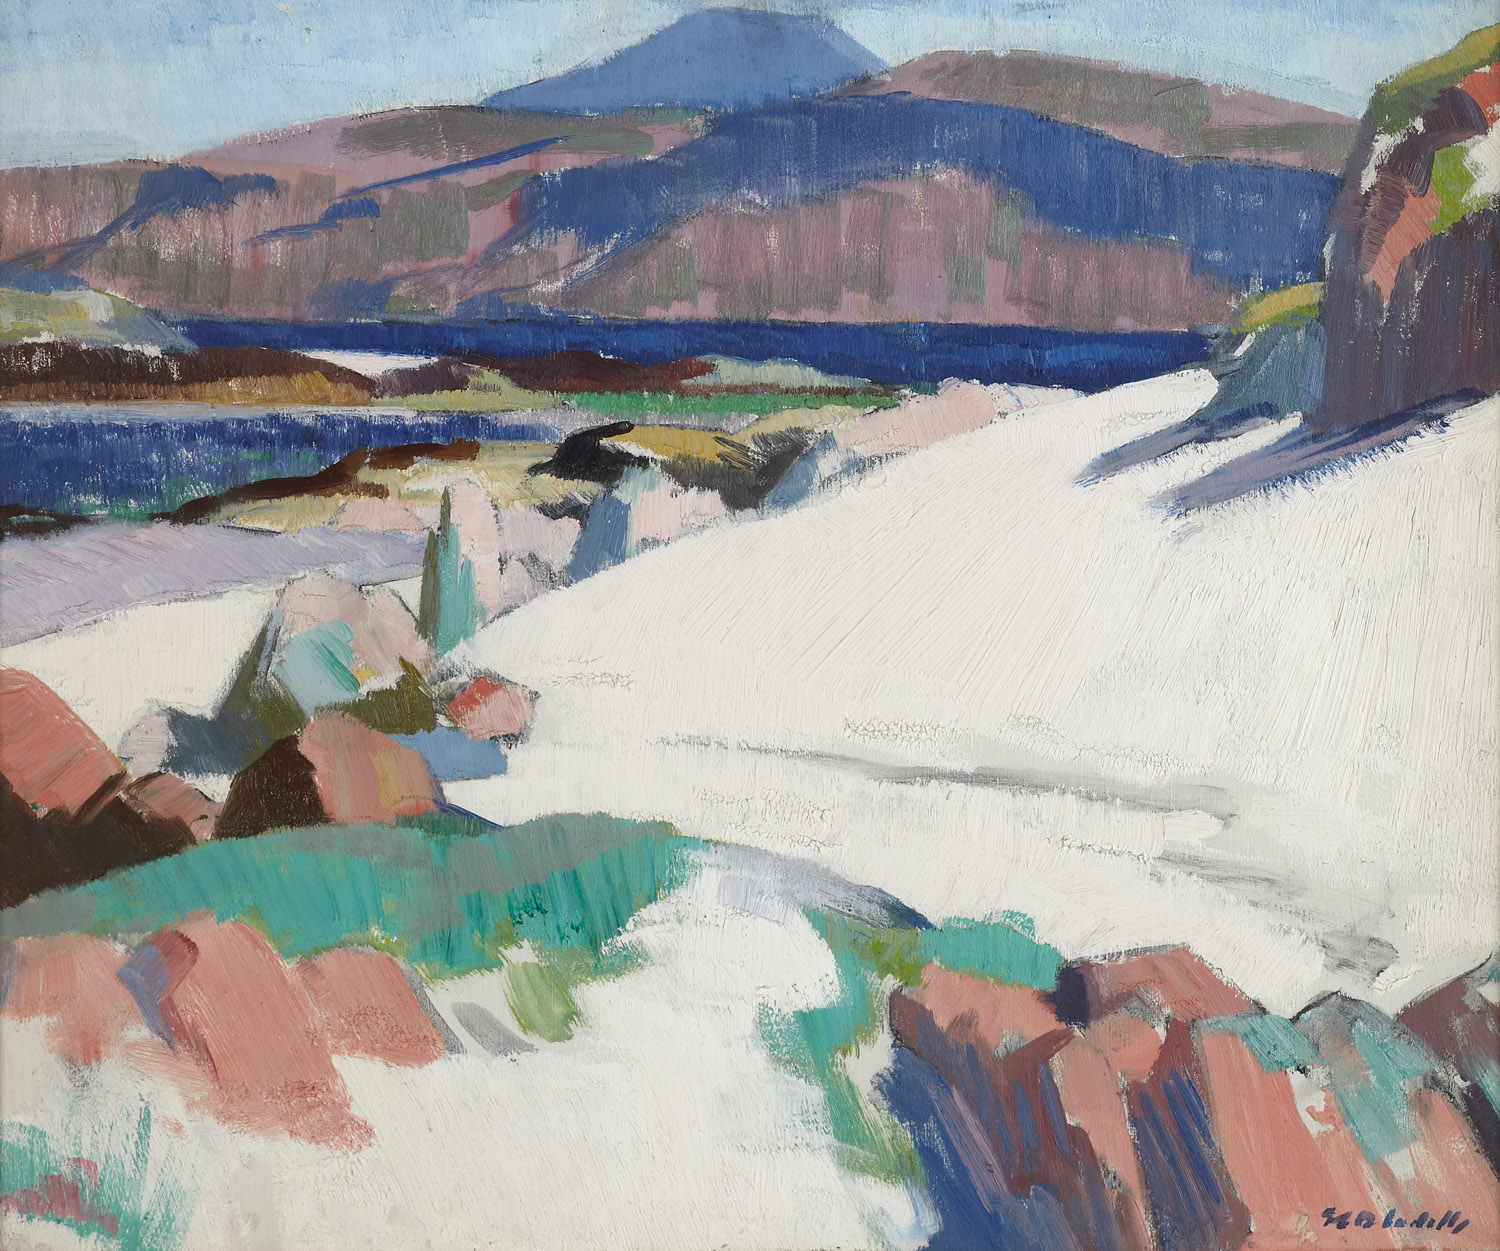 Lot 58 - FRANCIS CAMPBELL BOILEAU CADELL R.S.A., R.S.W. (SCOTTISH 1883-1937)